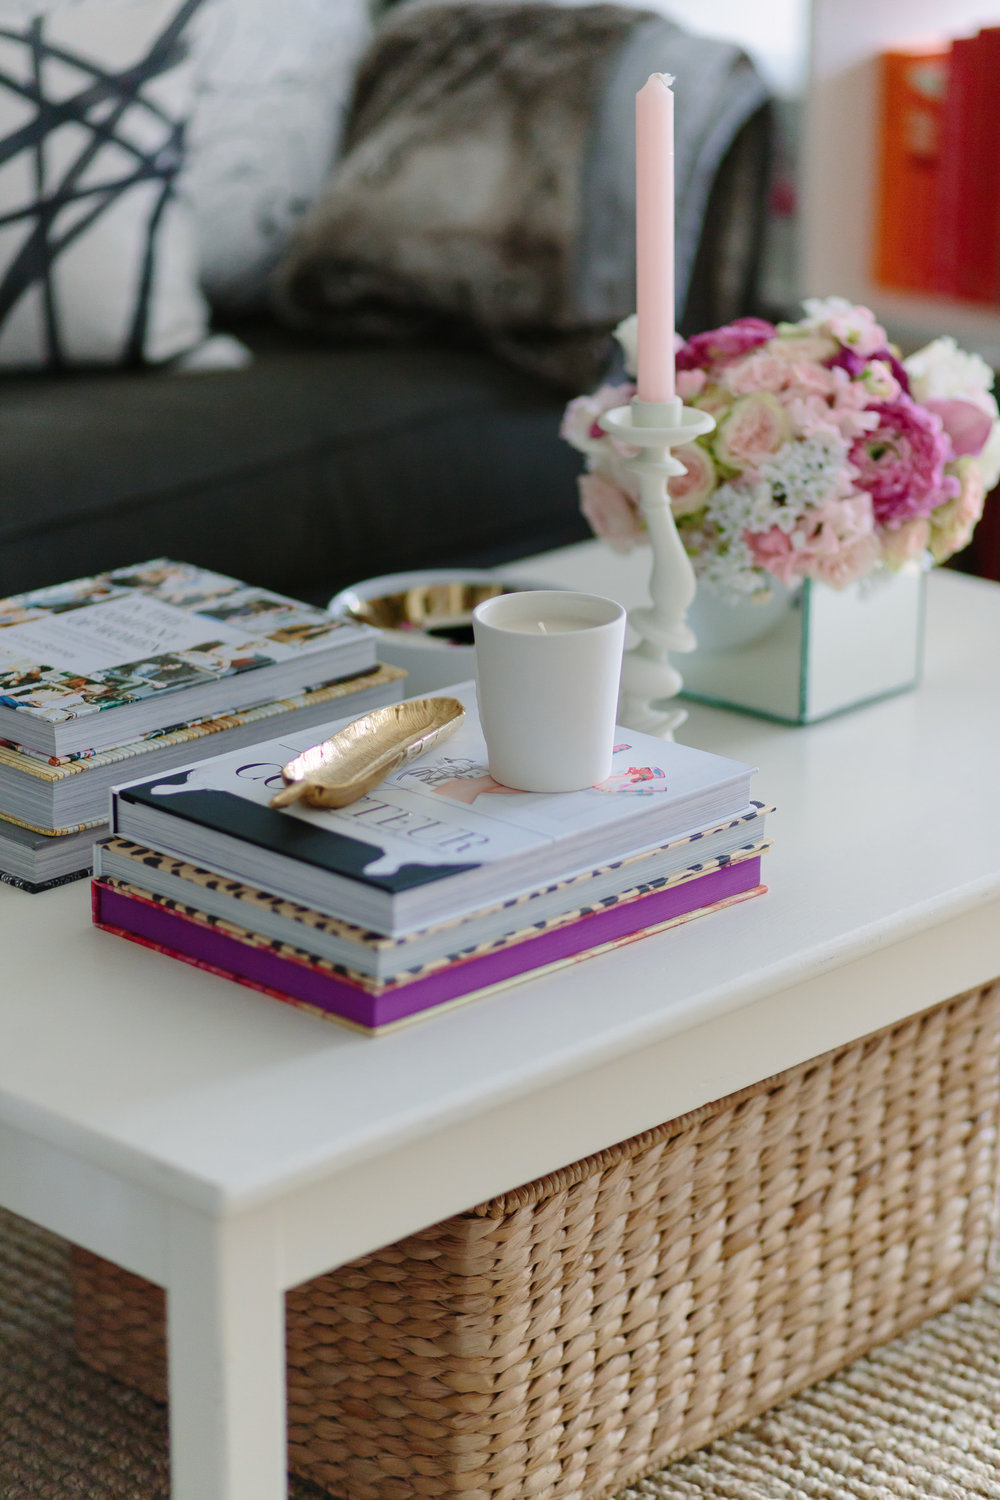 972af-coffee-table-styling-6716copy.jpg